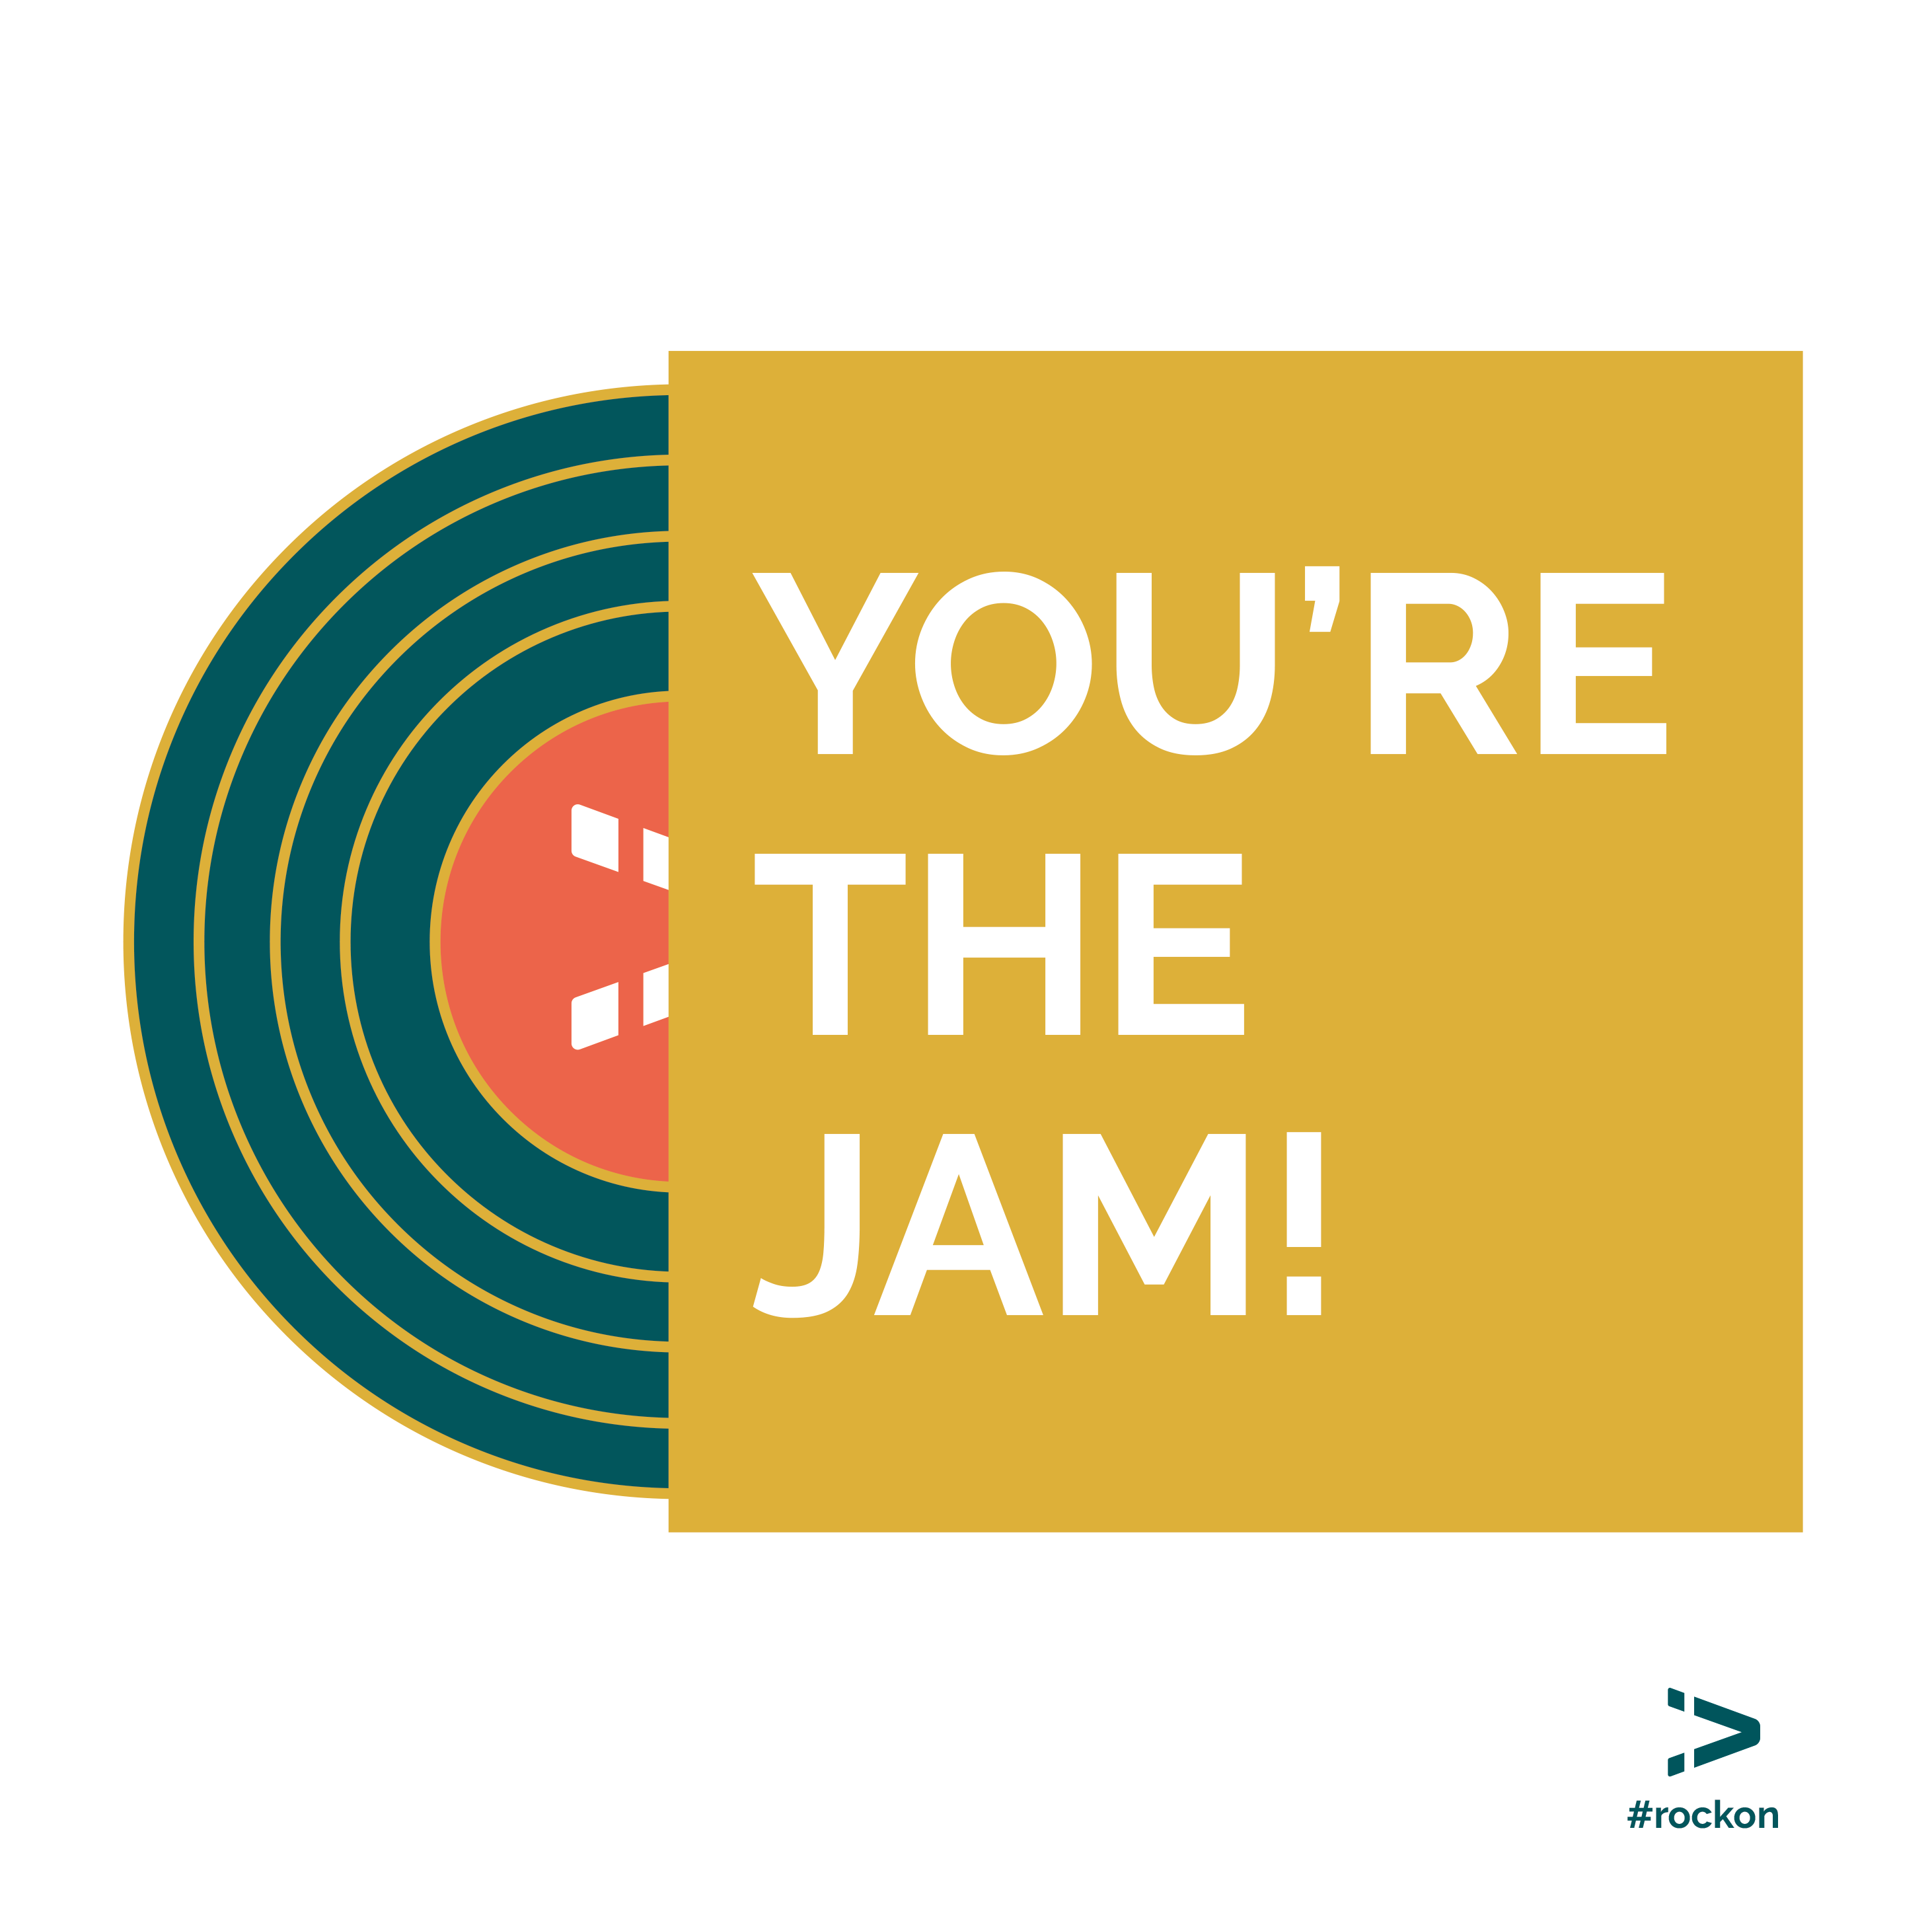 You're the jam